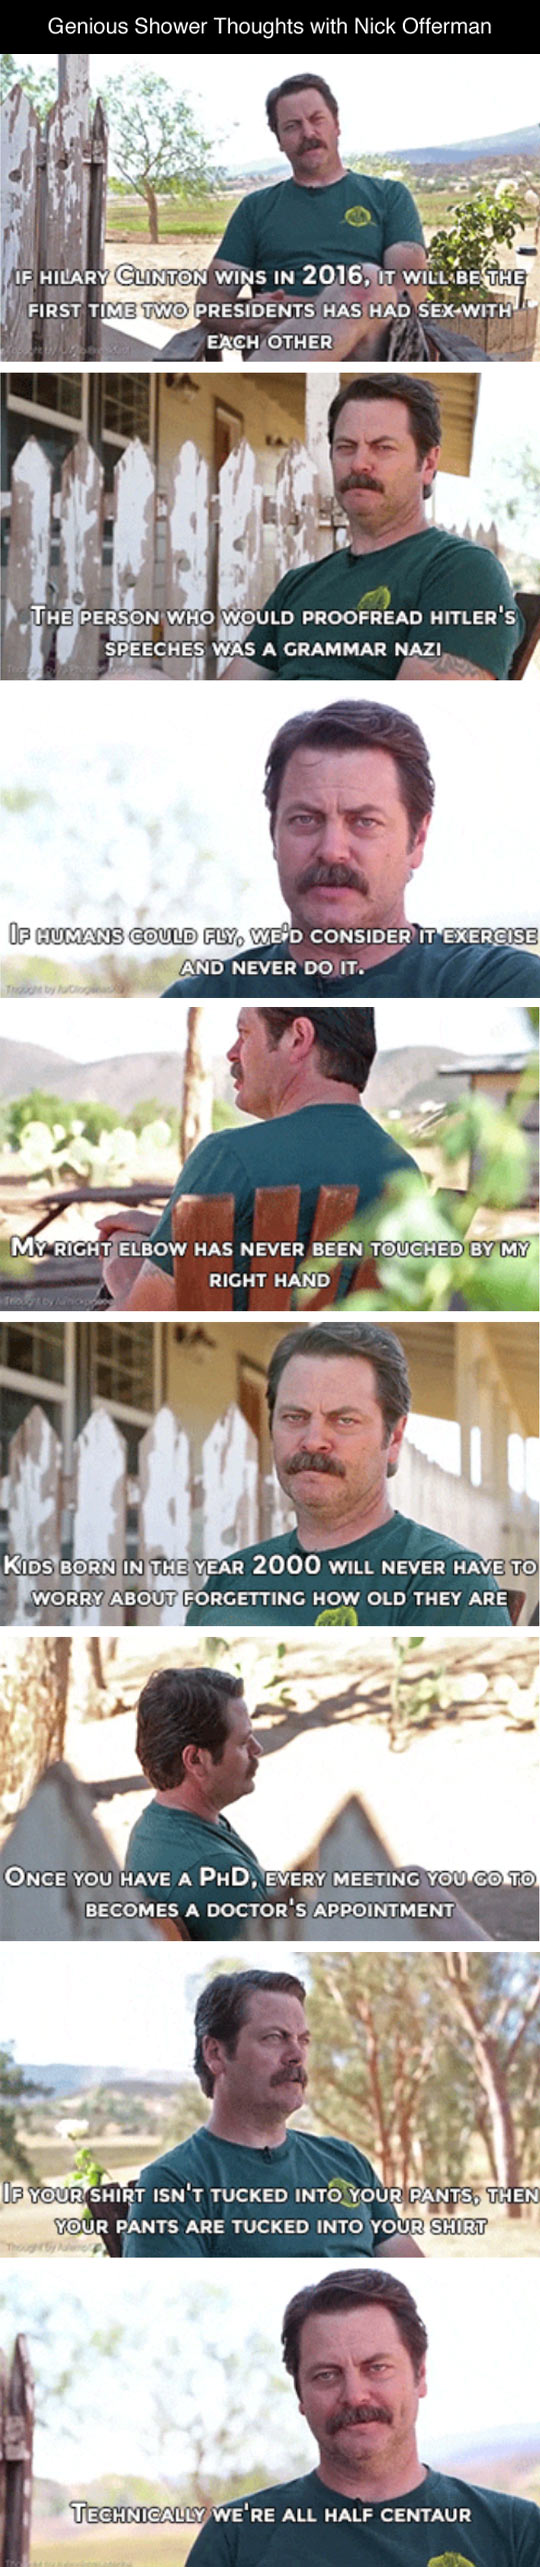 funny-Nick-Offerman-shower-thoughts